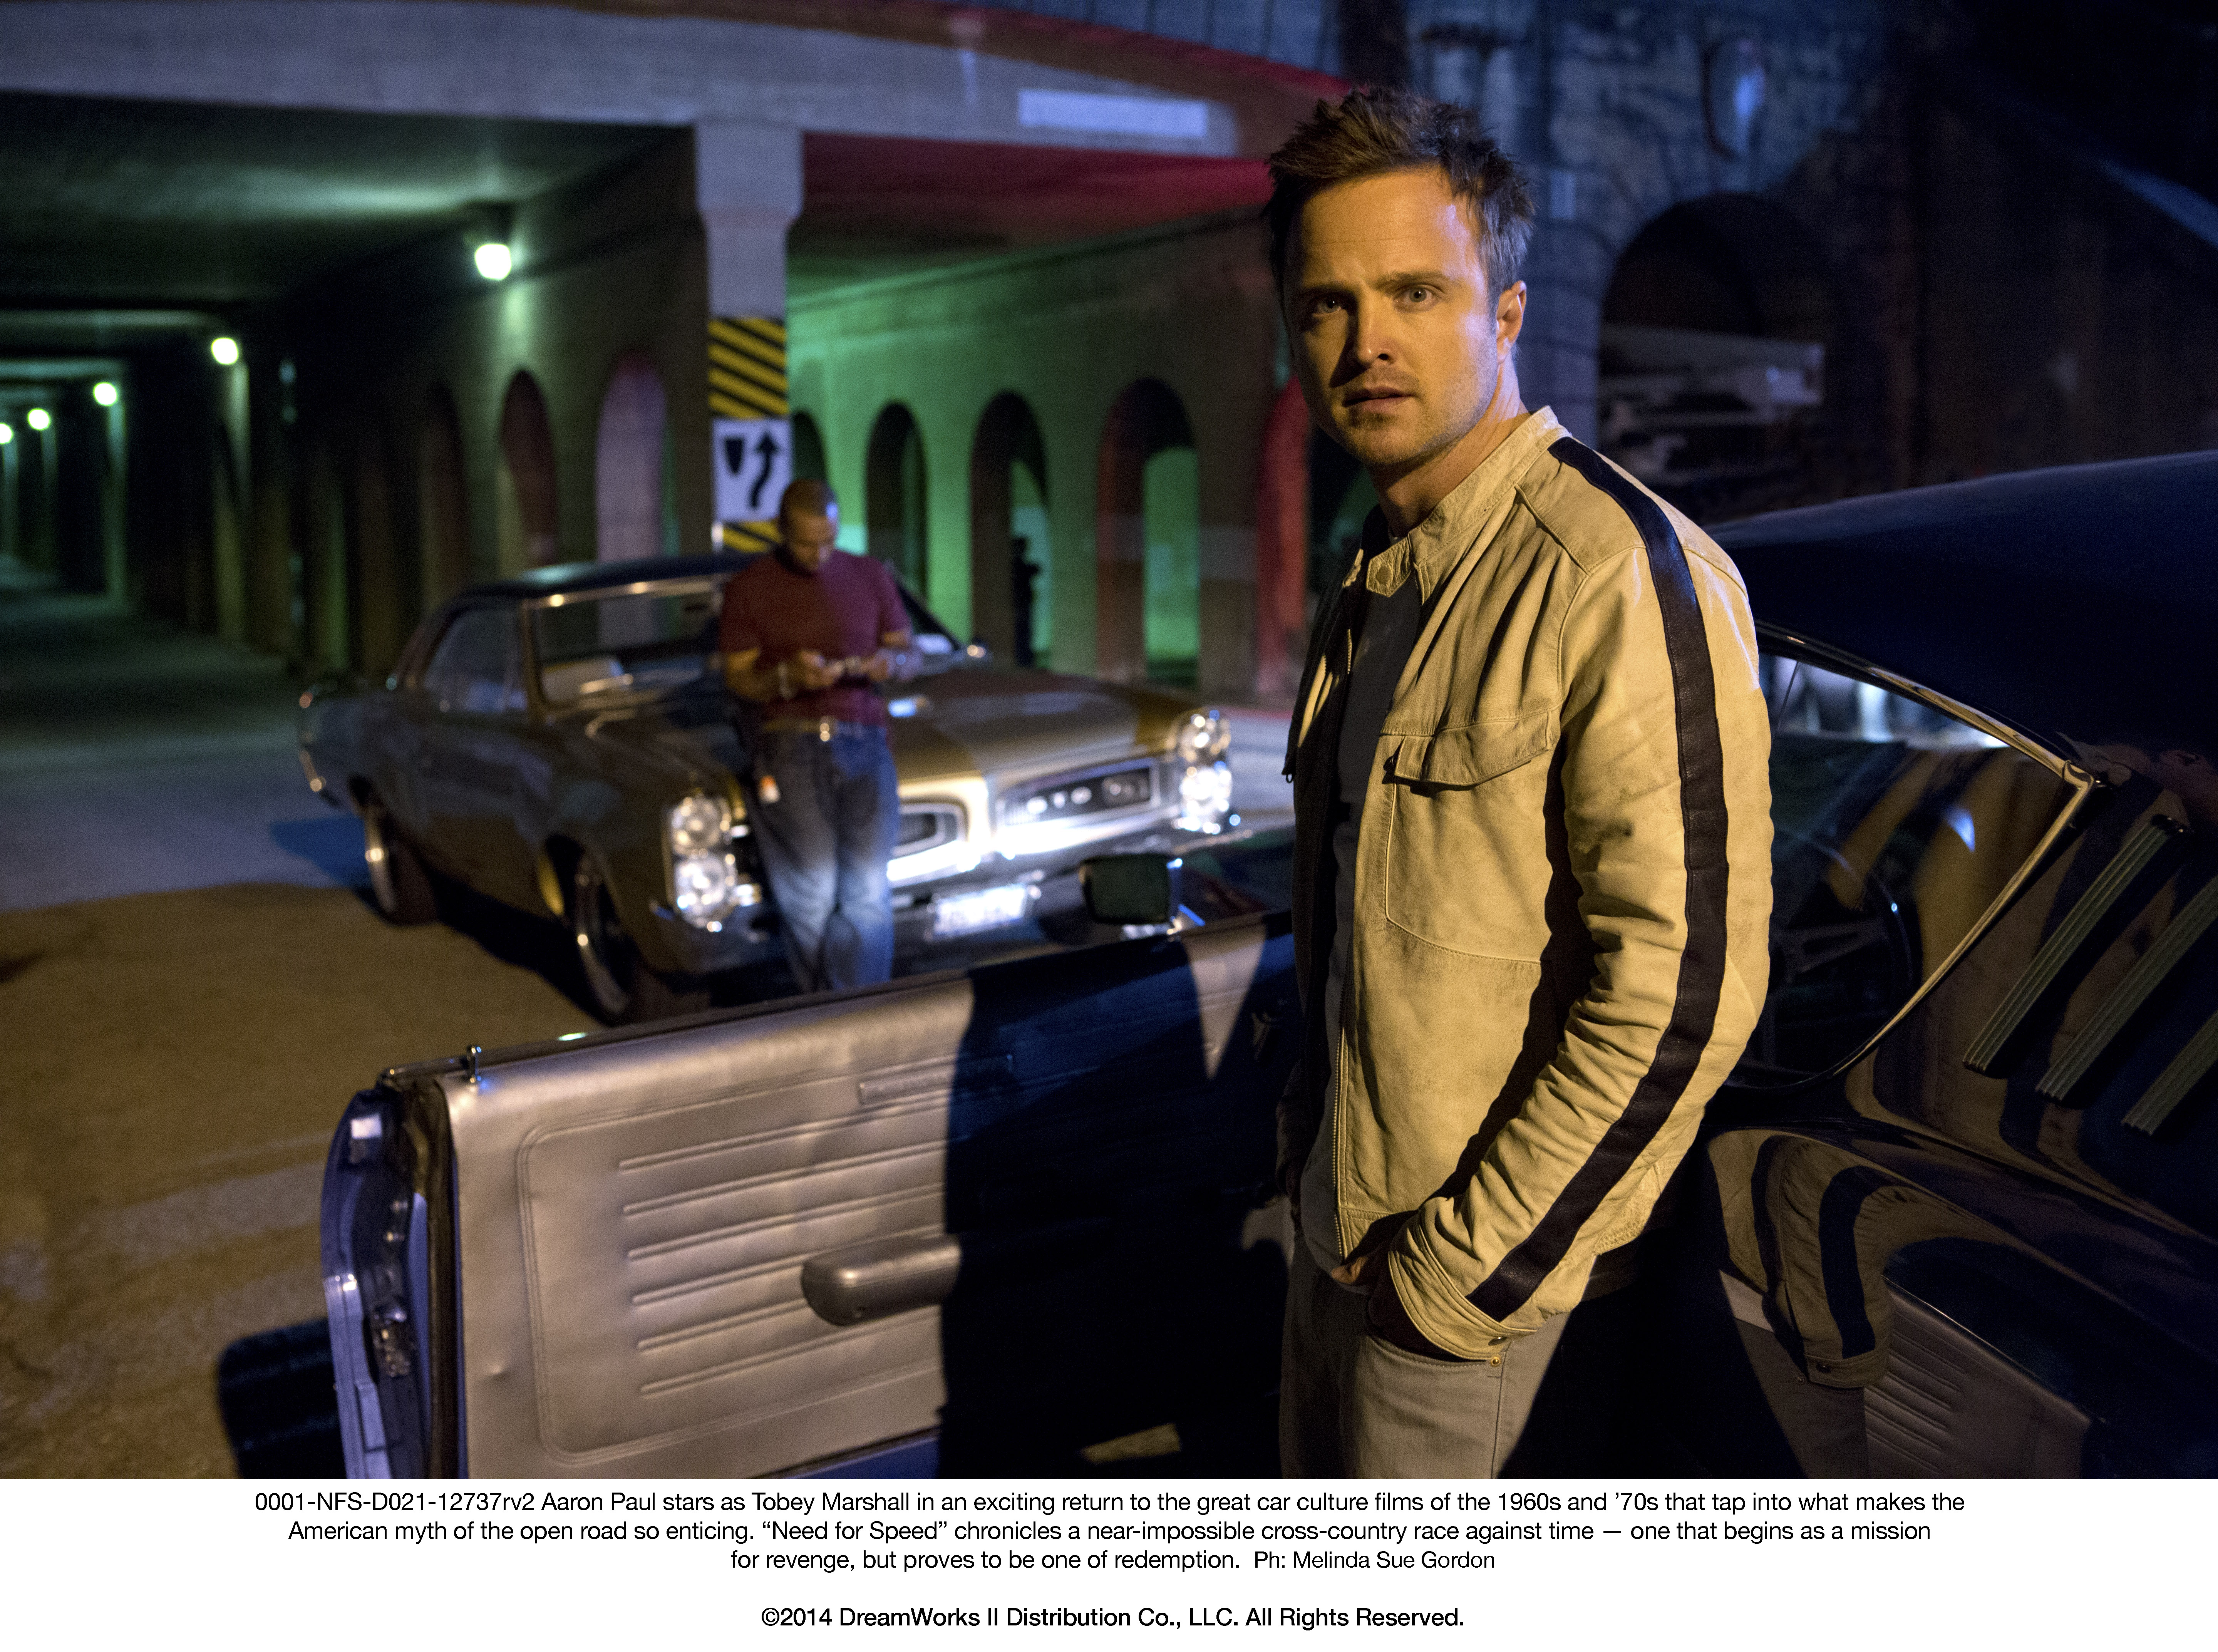 aaron paul need for speed. Black Bedroom Furniture Sets. Home Design Ideas